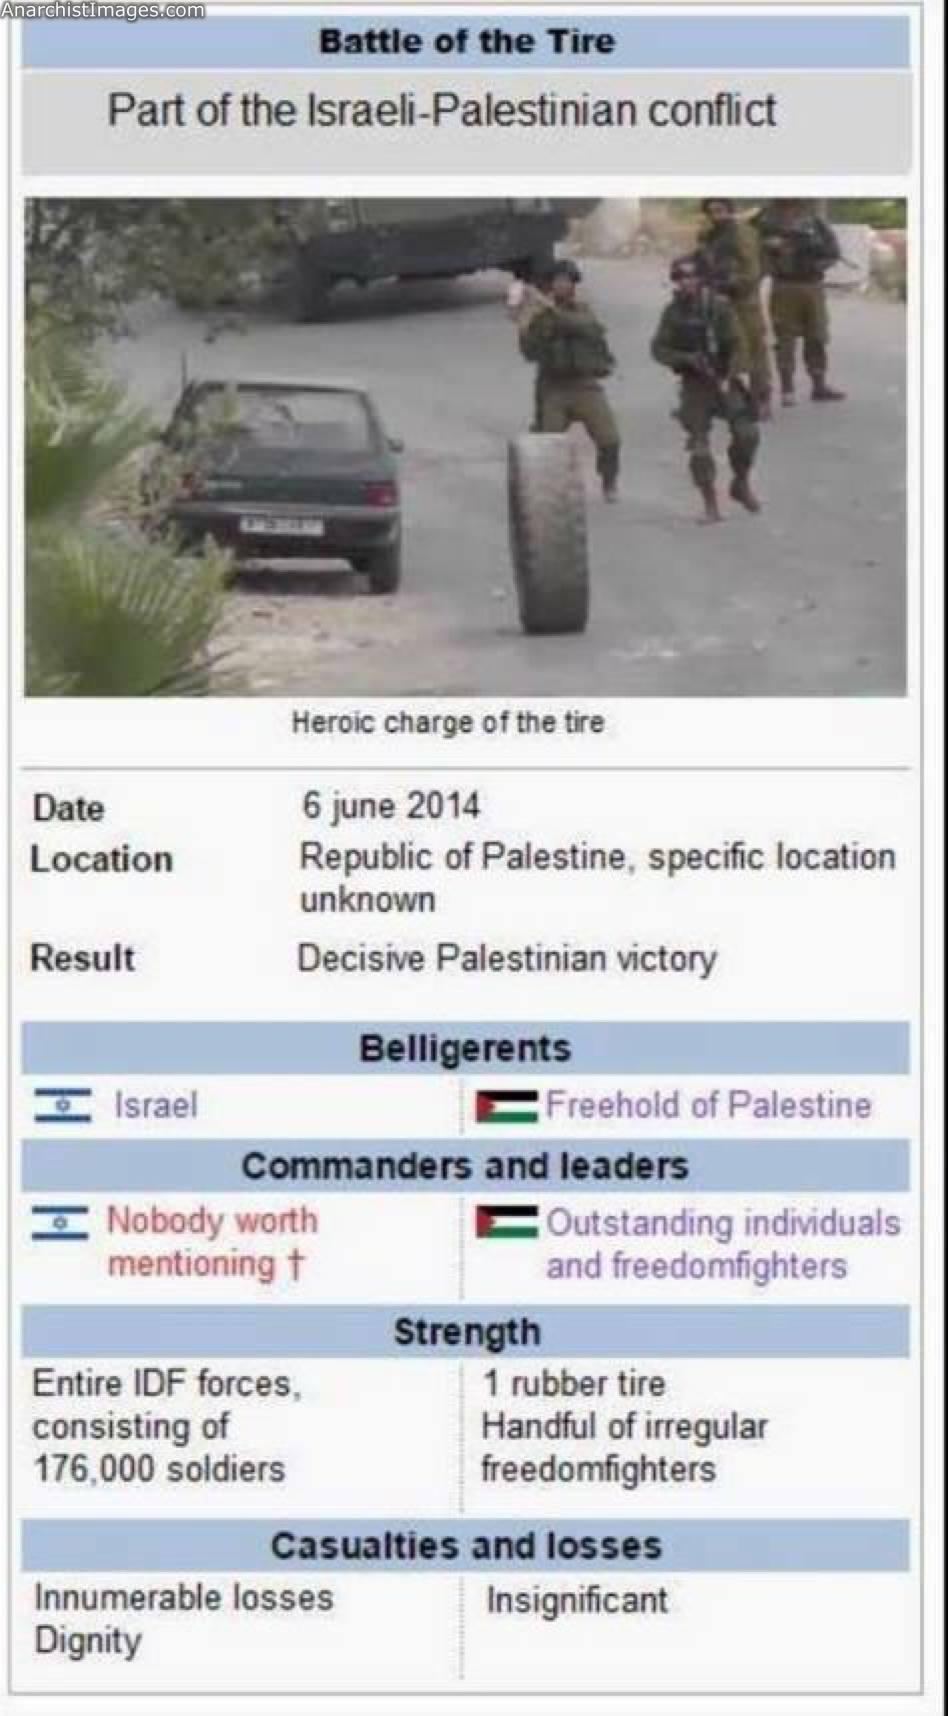 The Battle of the Tire (Palestine) Video from the epic battle: